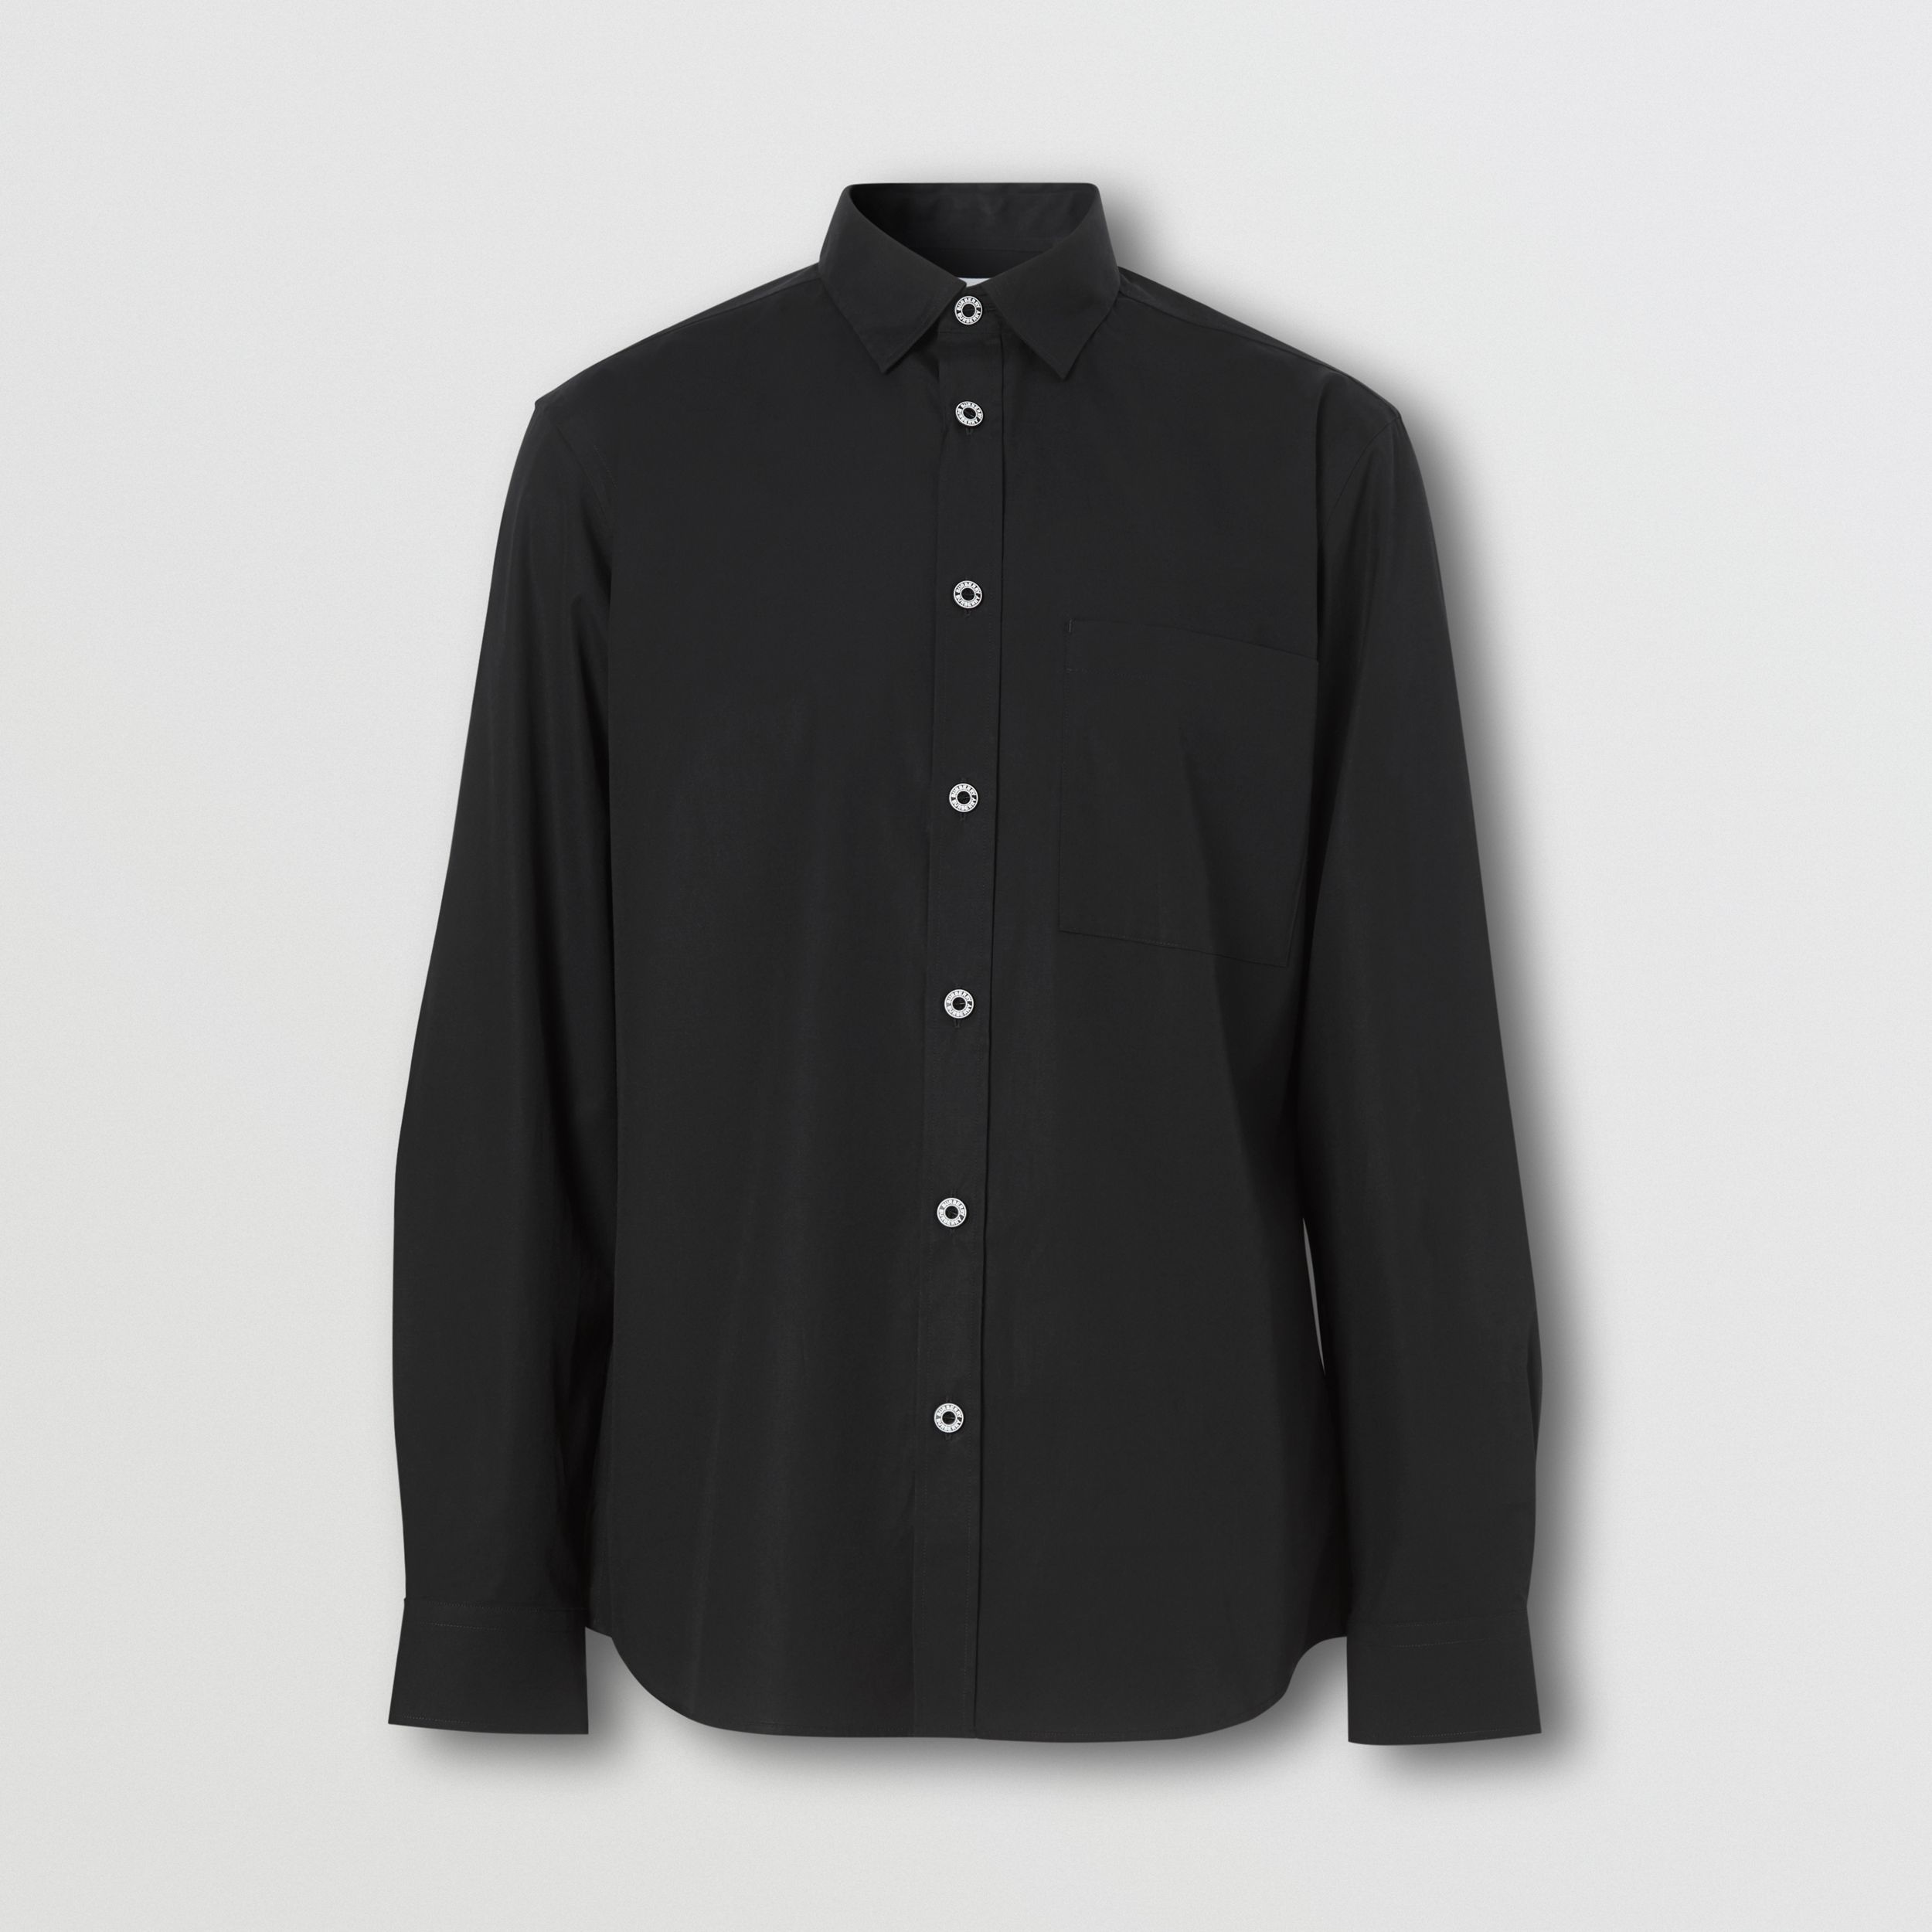 Slim Fit Stretch Cotton Poplin Shirt in Black - Men | Burberry - 4